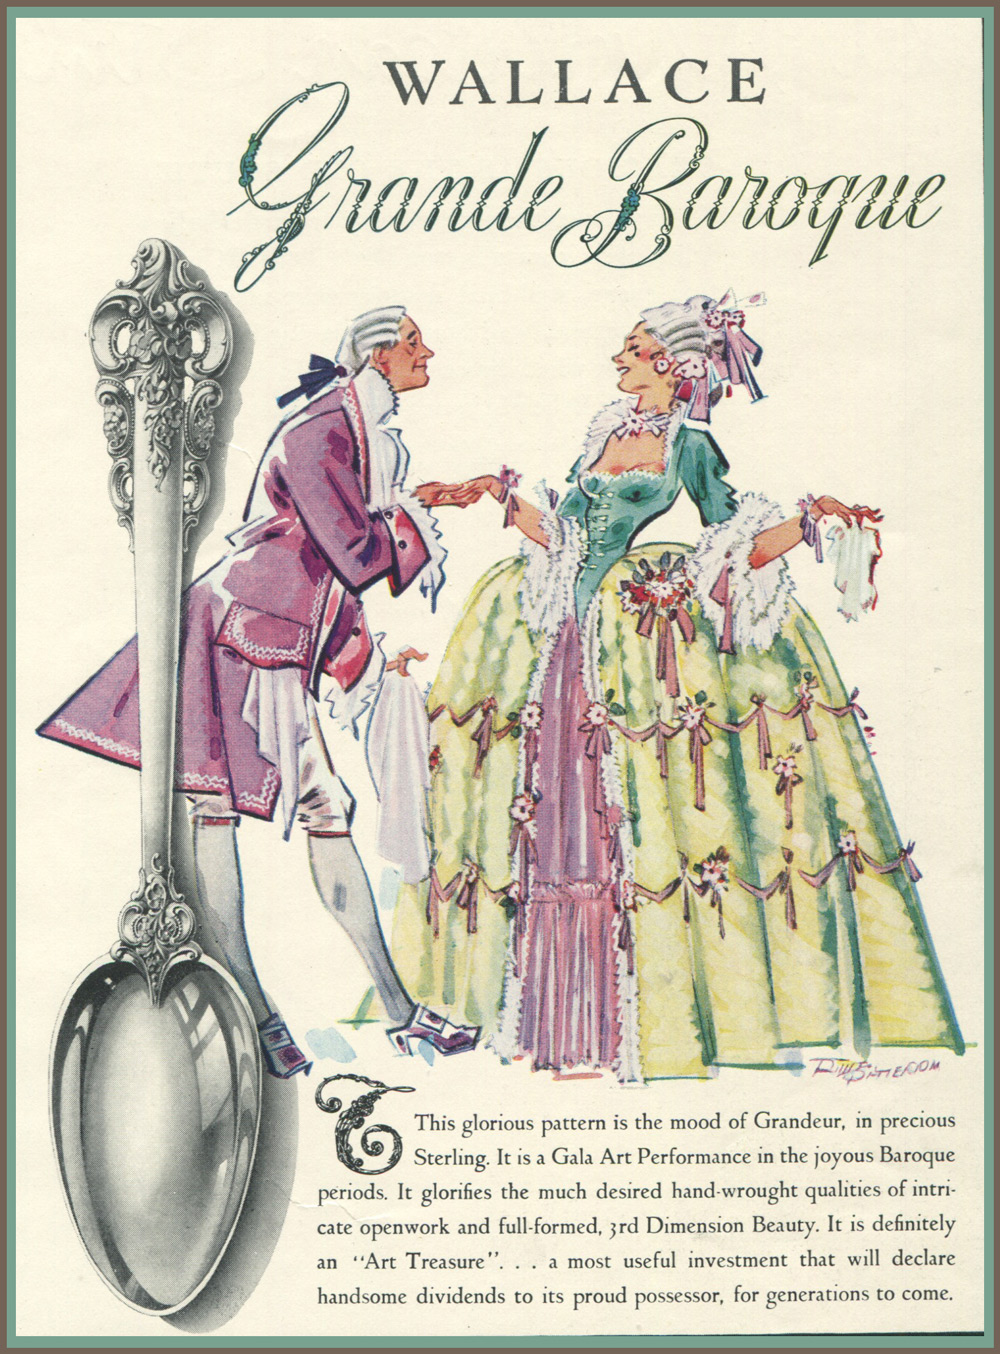 Grande Baroque Sterling Silver 1950s National Sales Ad